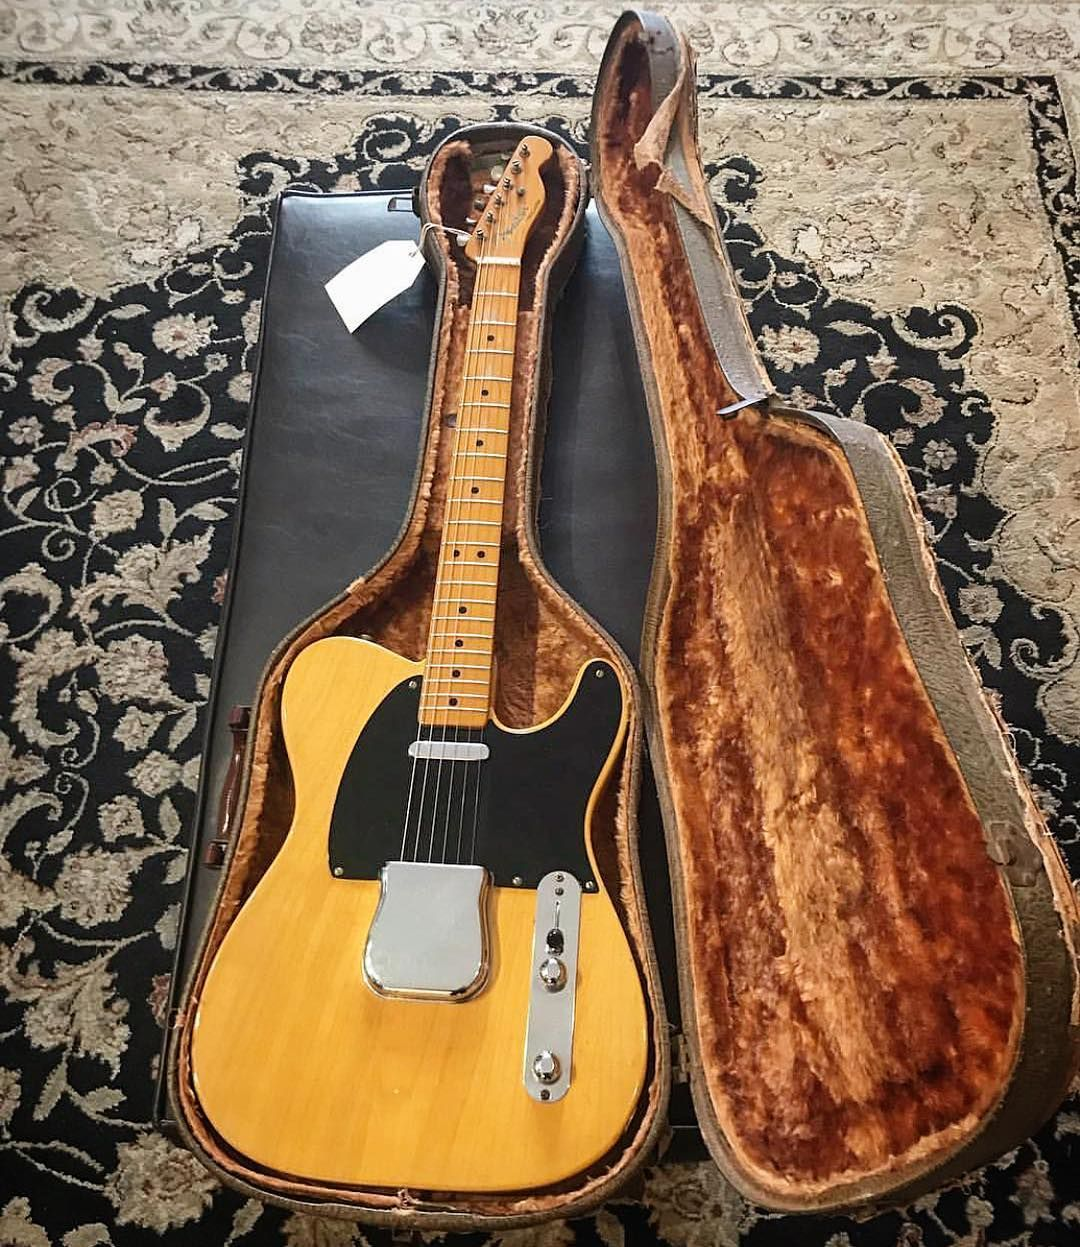 Jensen Bell On Instagram 1952 Stupid Clean Example Of A Blackguard Telecaster In Original Thermometer Case Ca Fender Telecaster Guitar Vintage Guitars